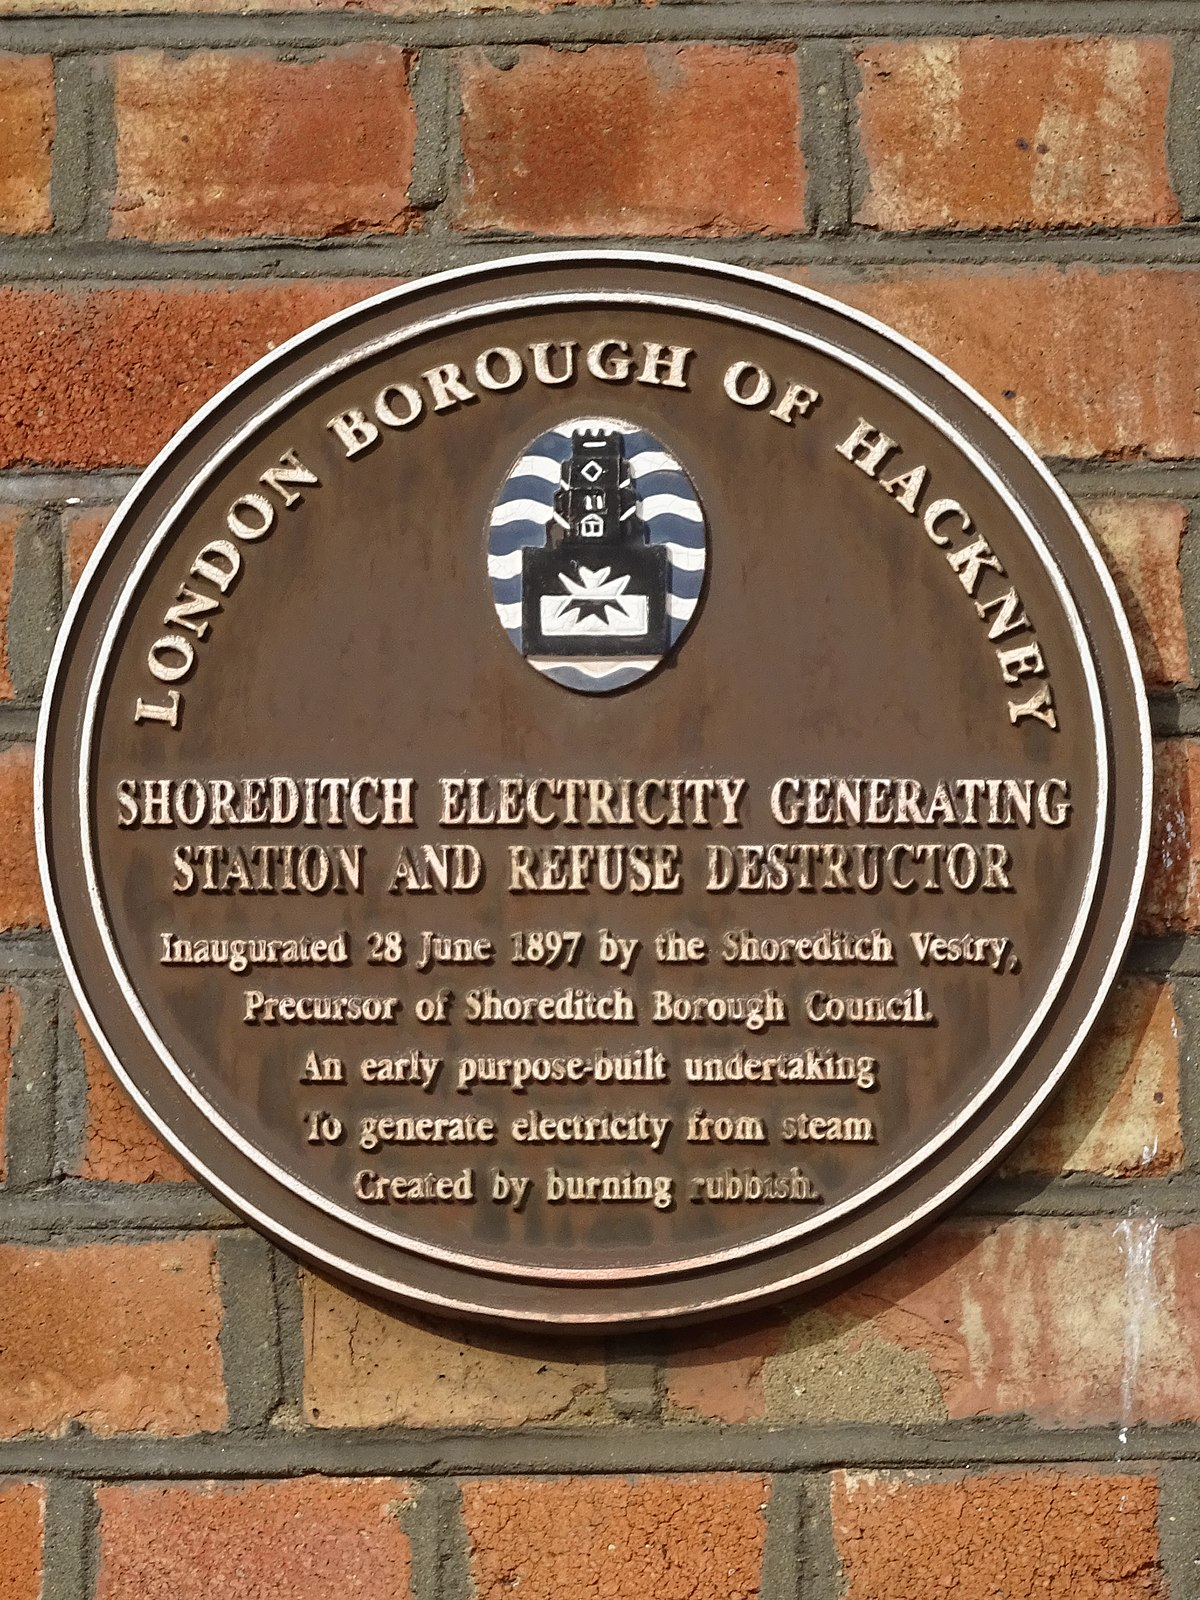 Shoreditch Station: File:Shoreditch Electricity Generating Station And Refuse